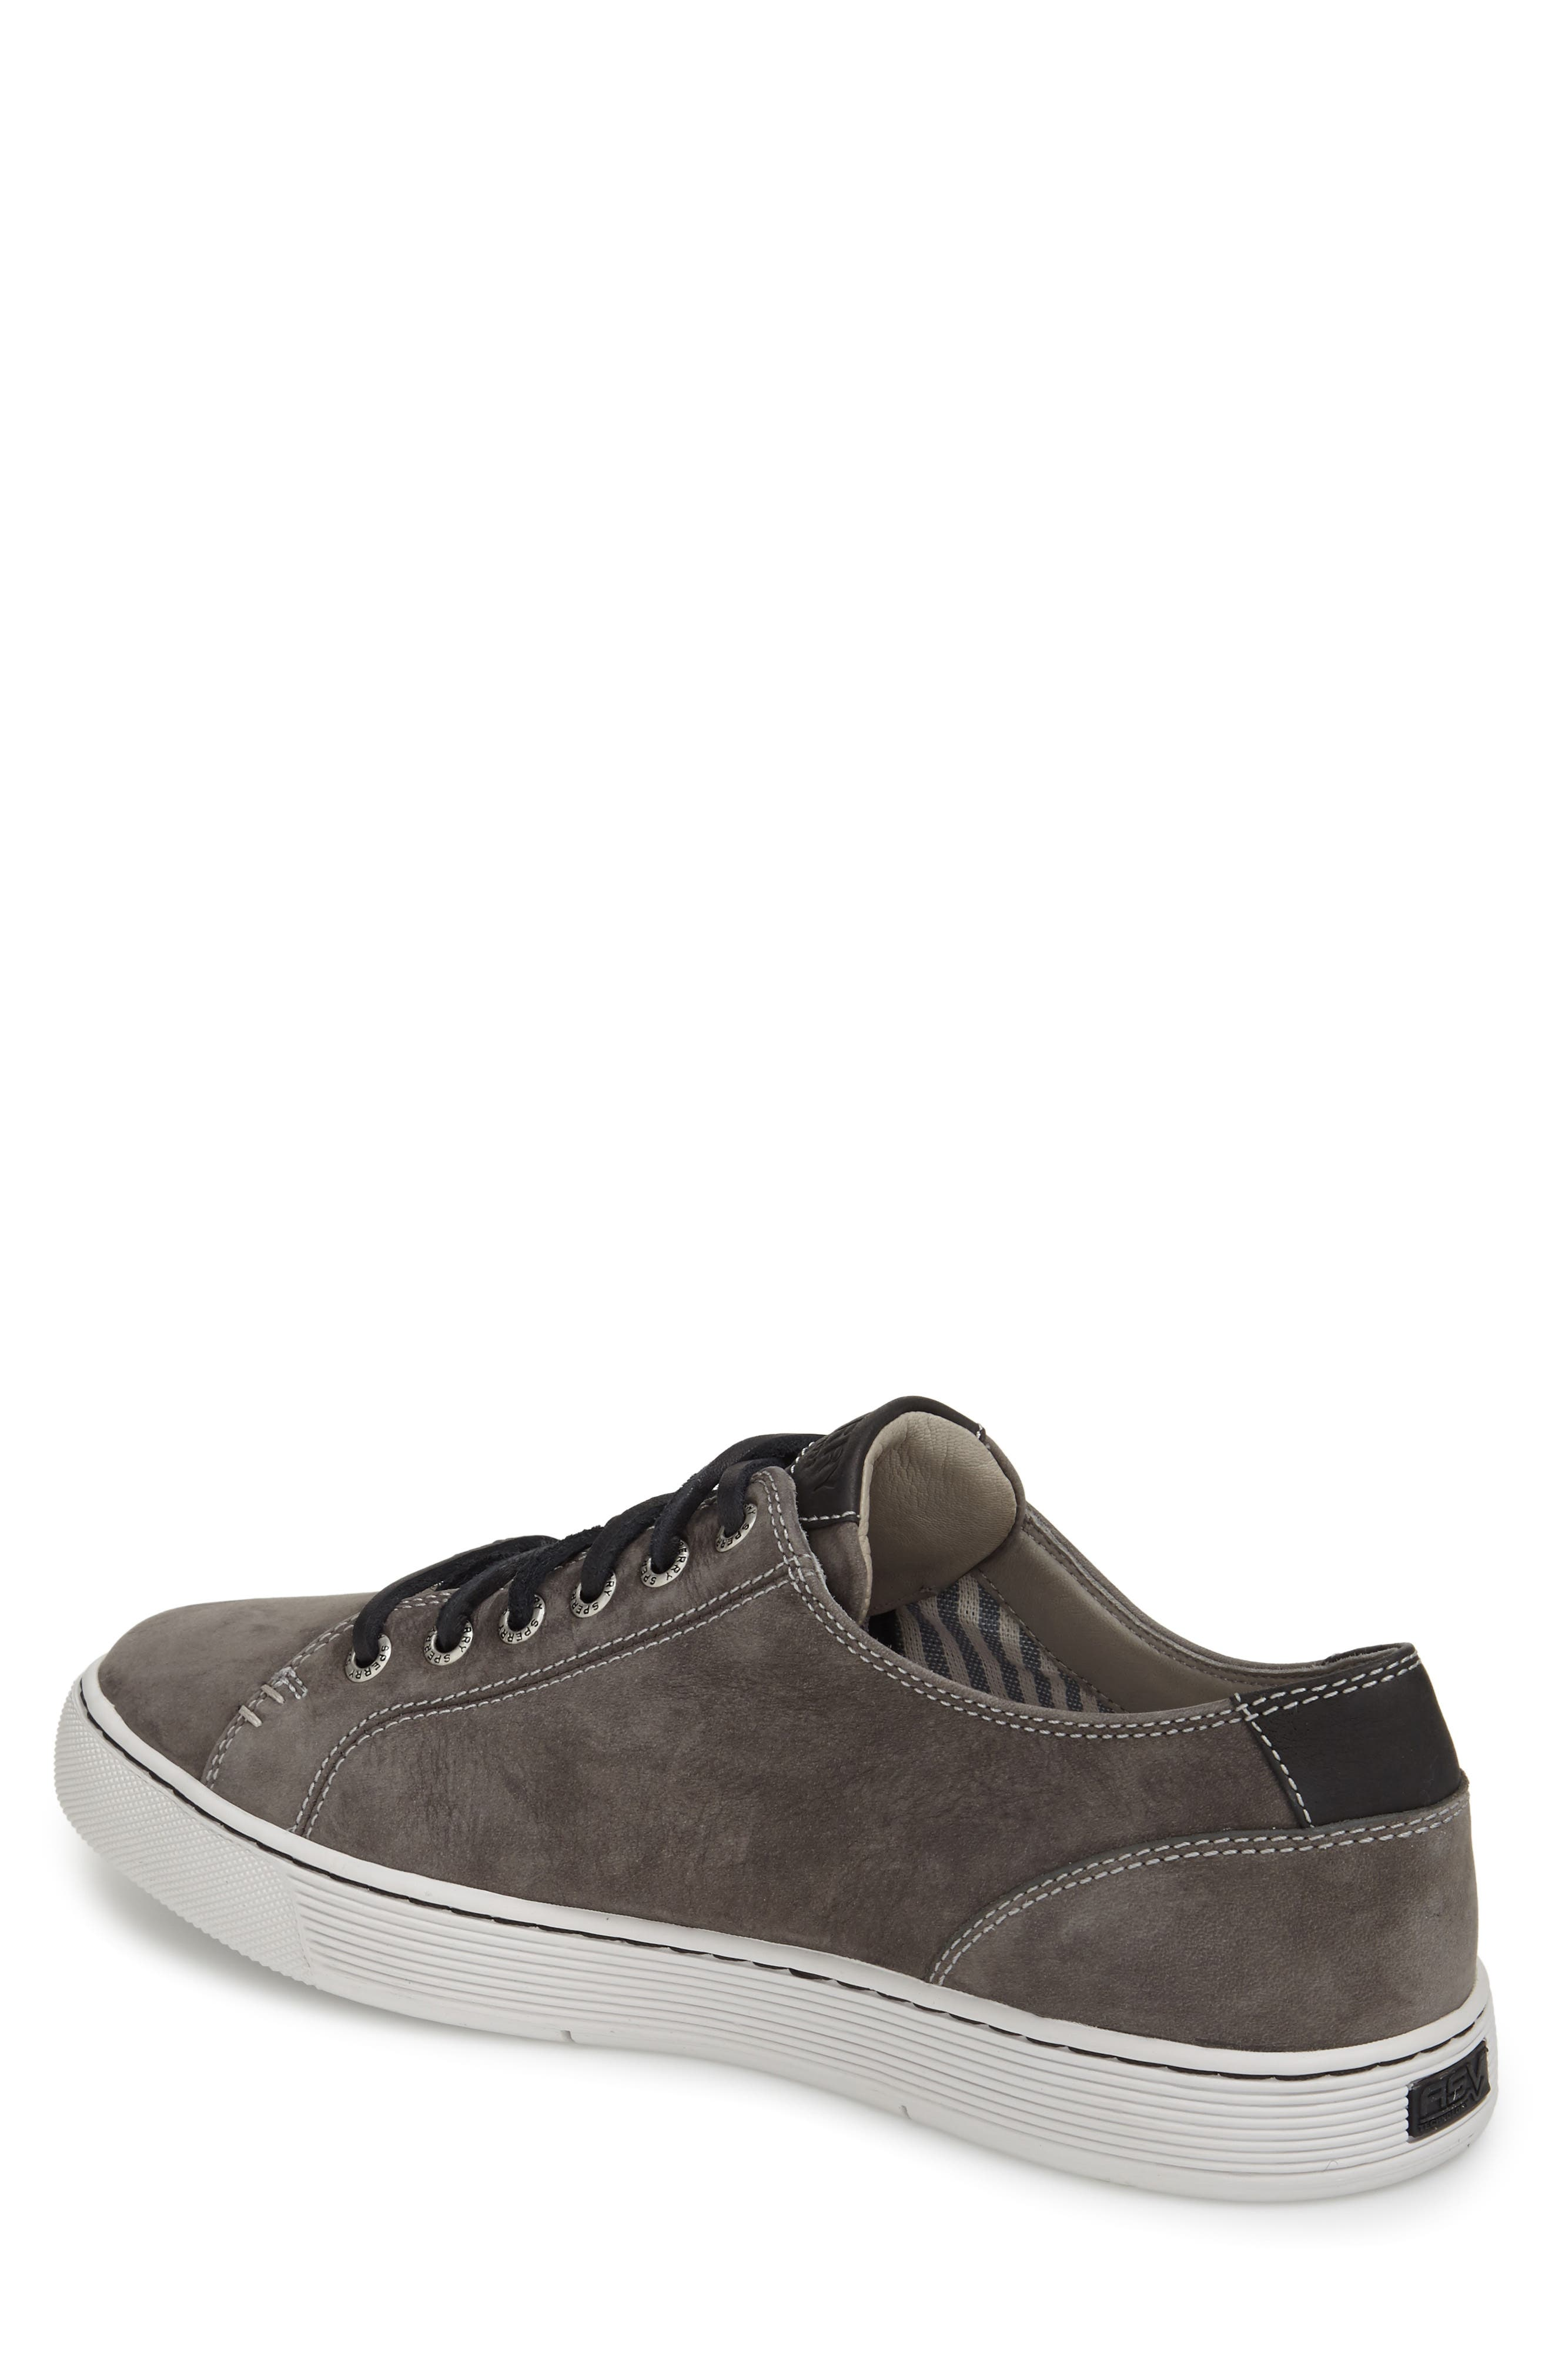 Gold Cup LLT Sneaker,                             Alternate thumbnail 4, color,                             GREY SUEDE